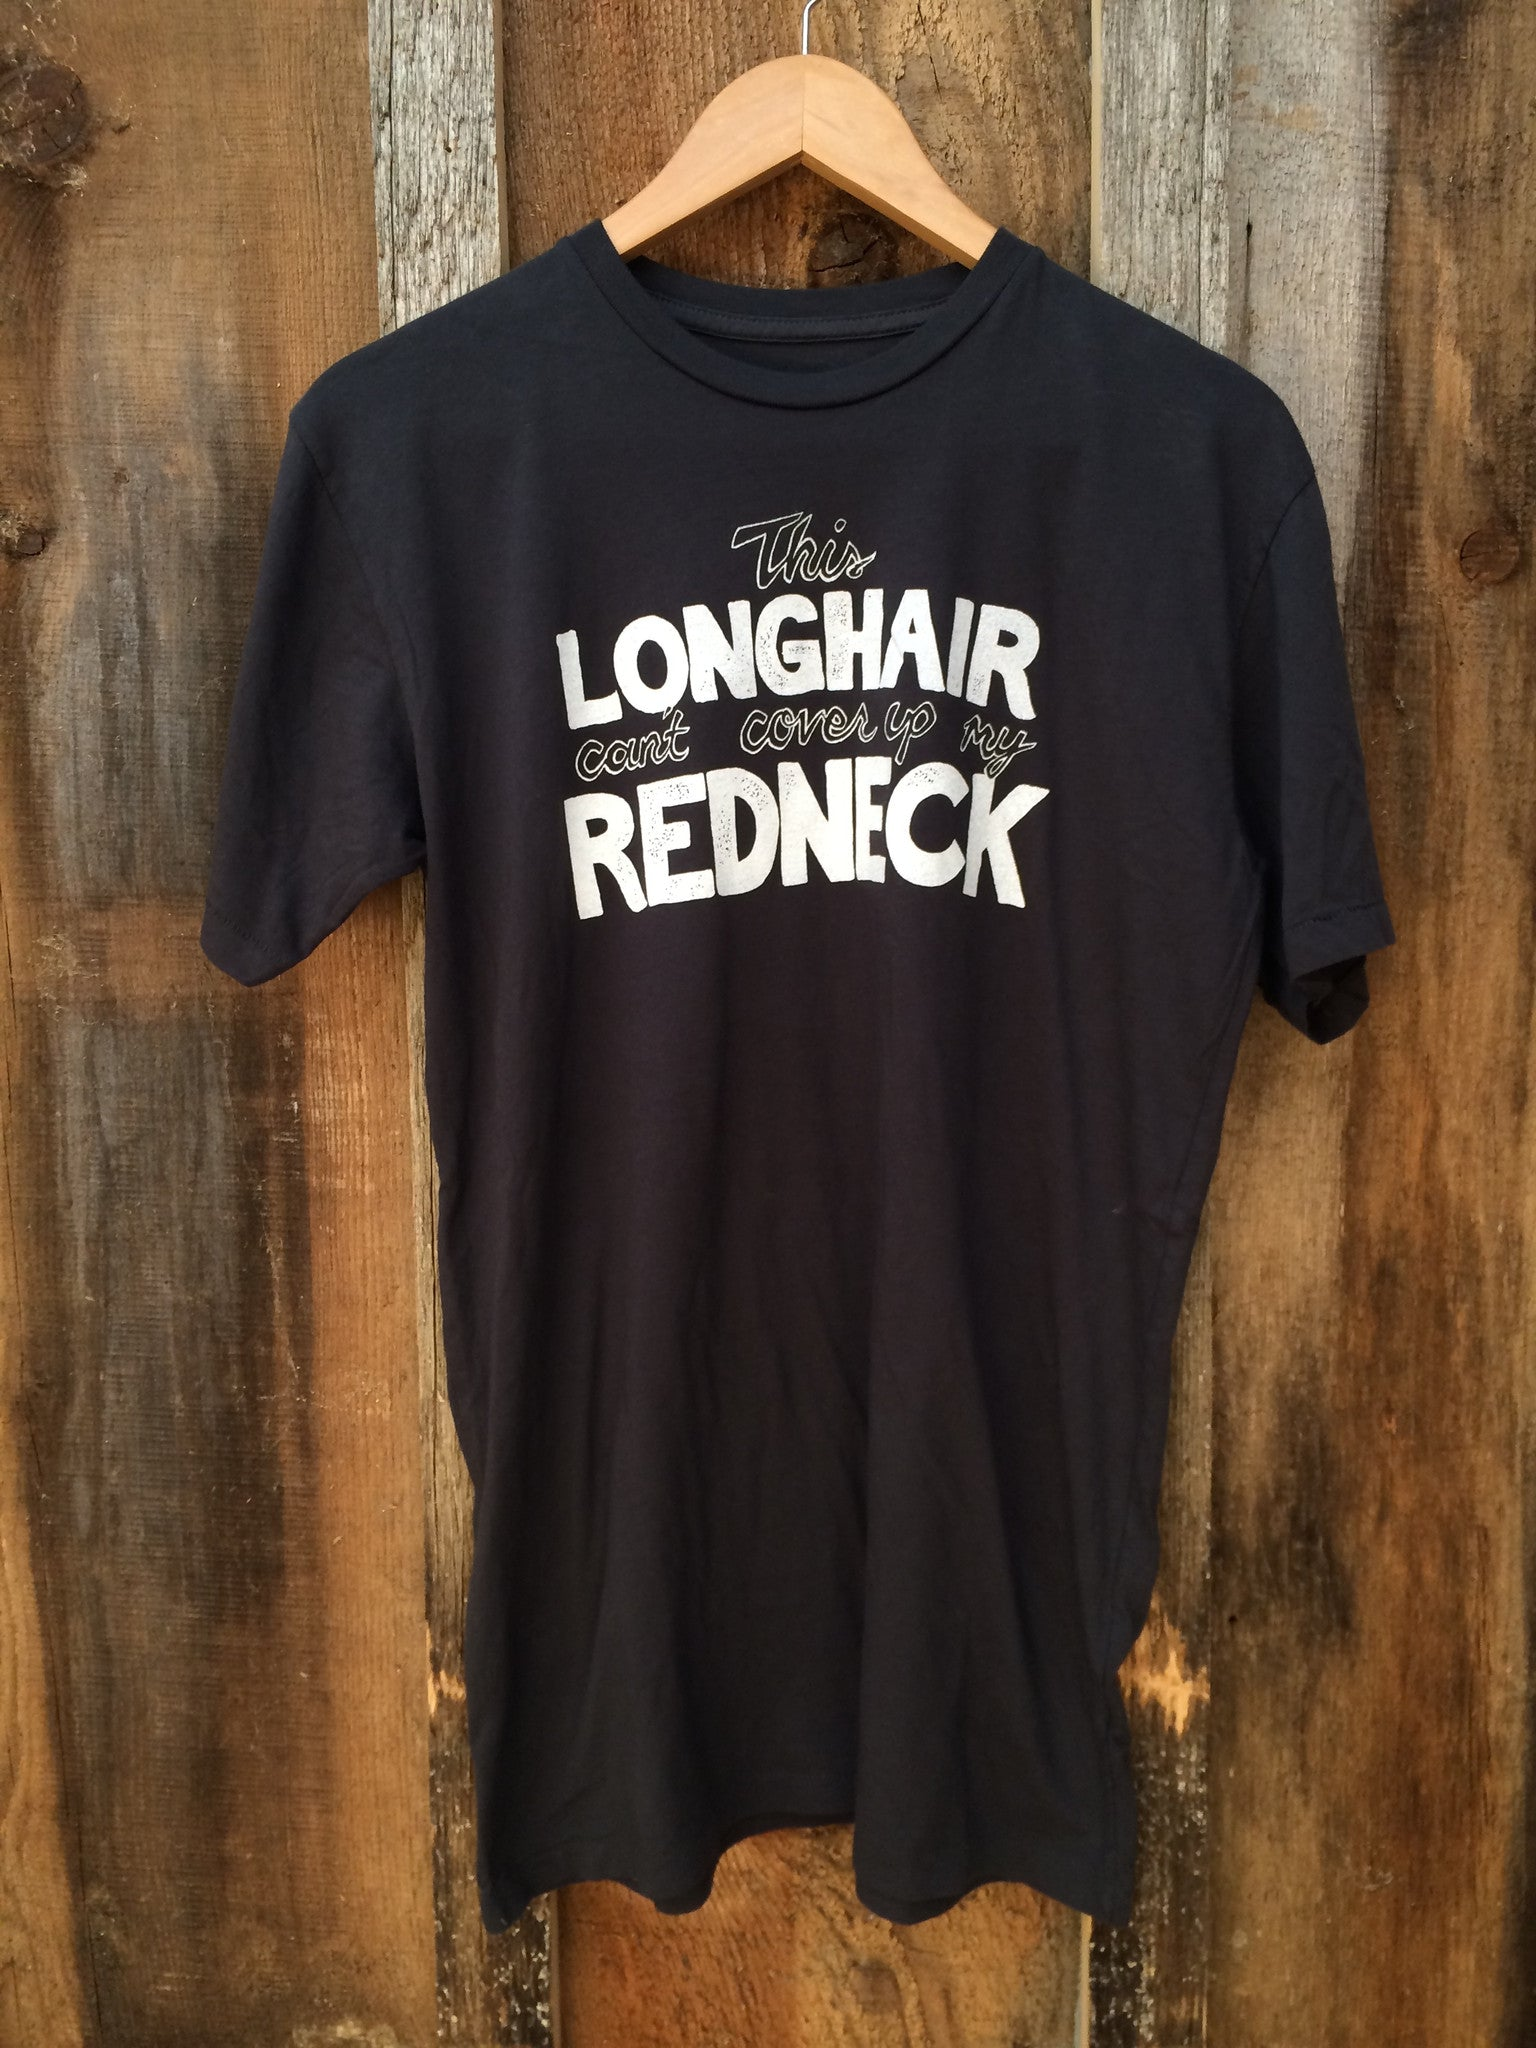 Long Hair Redneck Mens Tee Blk/Wht